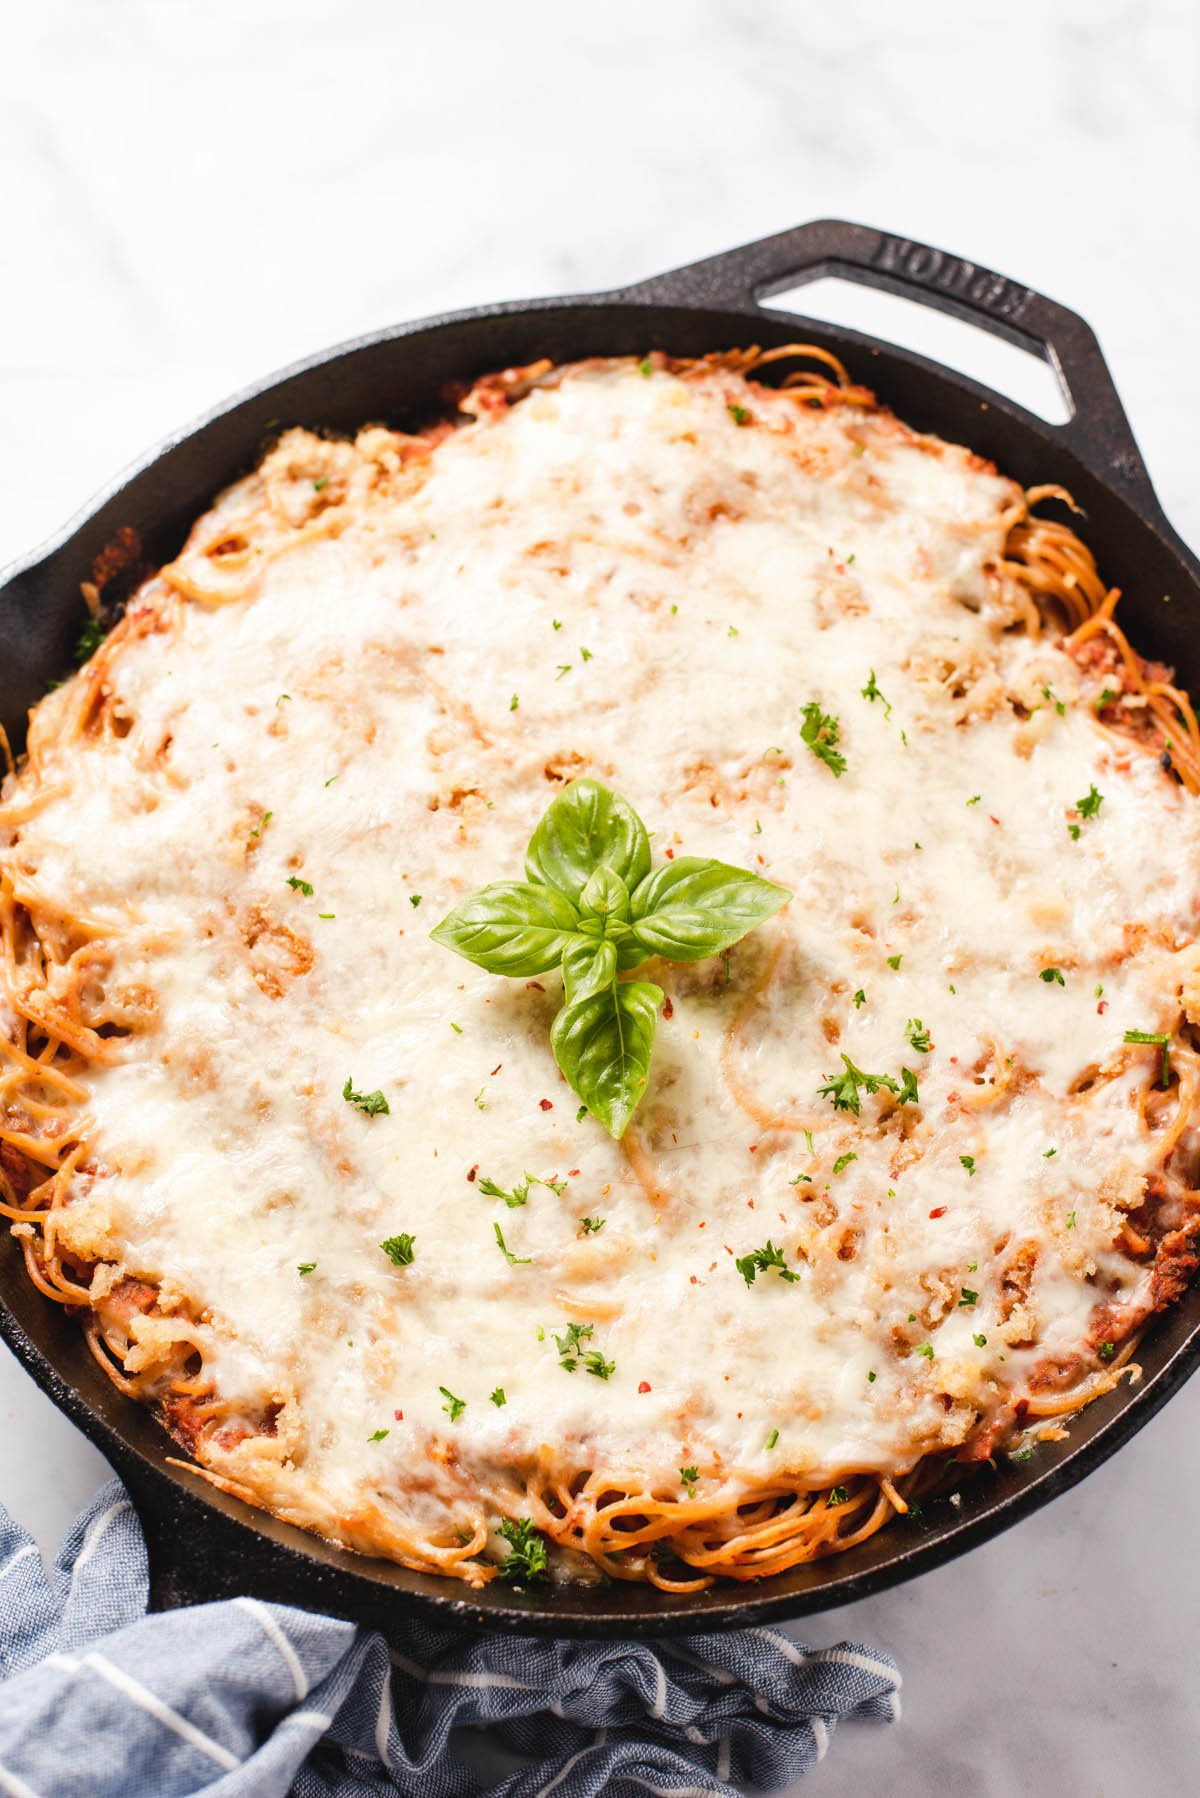 Cast iron pan with cheese topped spaghetti